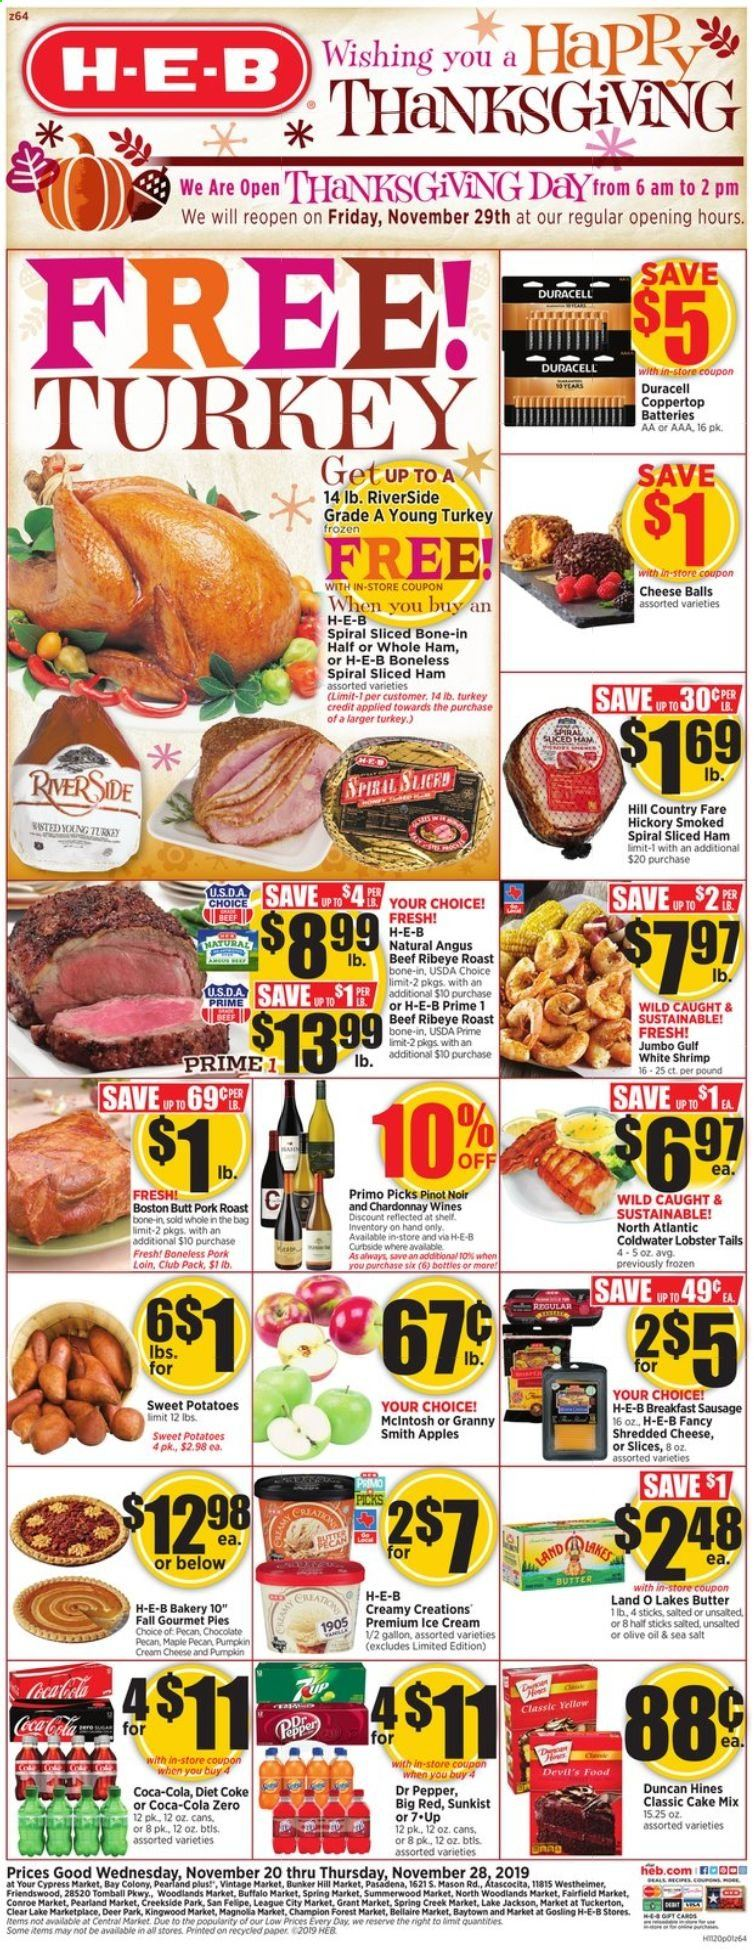 H-E-B Flyer - 11.20.2019 - 11.28.2019 - Sales products - sweet potatoes, potatoes, pumpkin, apples, AVG, cake mix, cake, lobster, lobster tail, shrimps, cream cheese, ham, sausage, shredded cheese, cheese, butter, ice cream, chocolate, salt, sea salt, pepper, olive oil, Coca-Cola, Coca-Cola light, Dr. Pepper, Diet Coke, Coca-Cola zero, Chardonnay, Pinot Noir, turkey, beef meat, pork loin, pork meat, pork roast, Frozen, paper, battery, Duracell, McIntosh, popper, spring. Page 1.